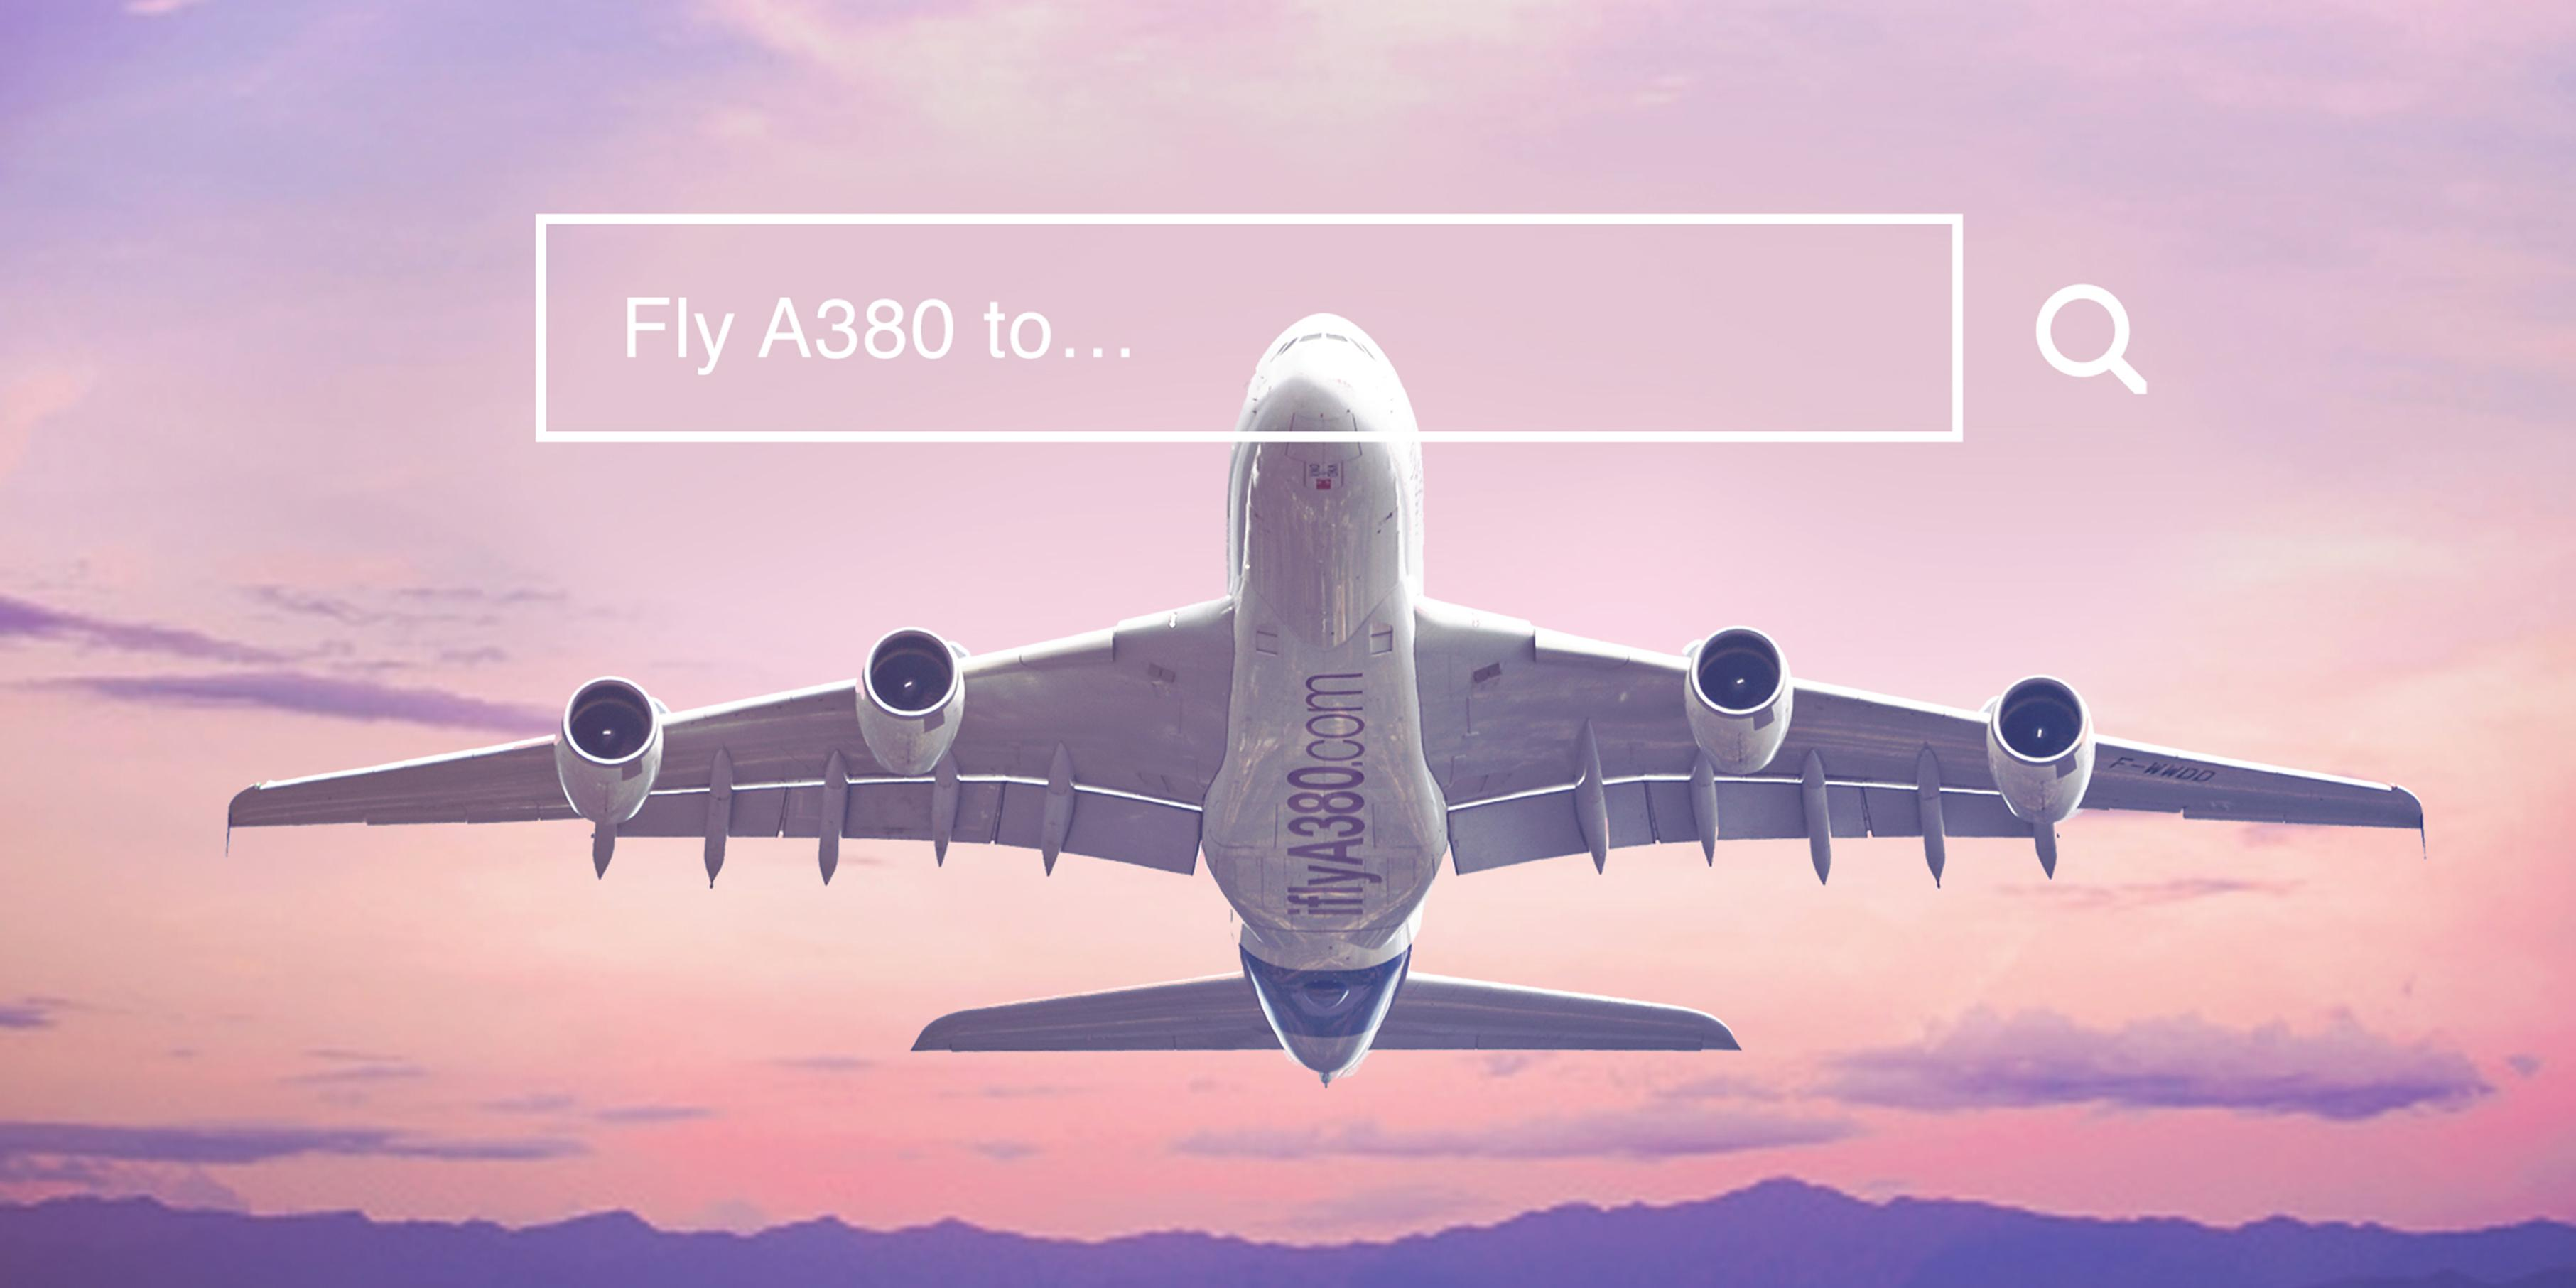 IflyA380 01-choose to fly A380